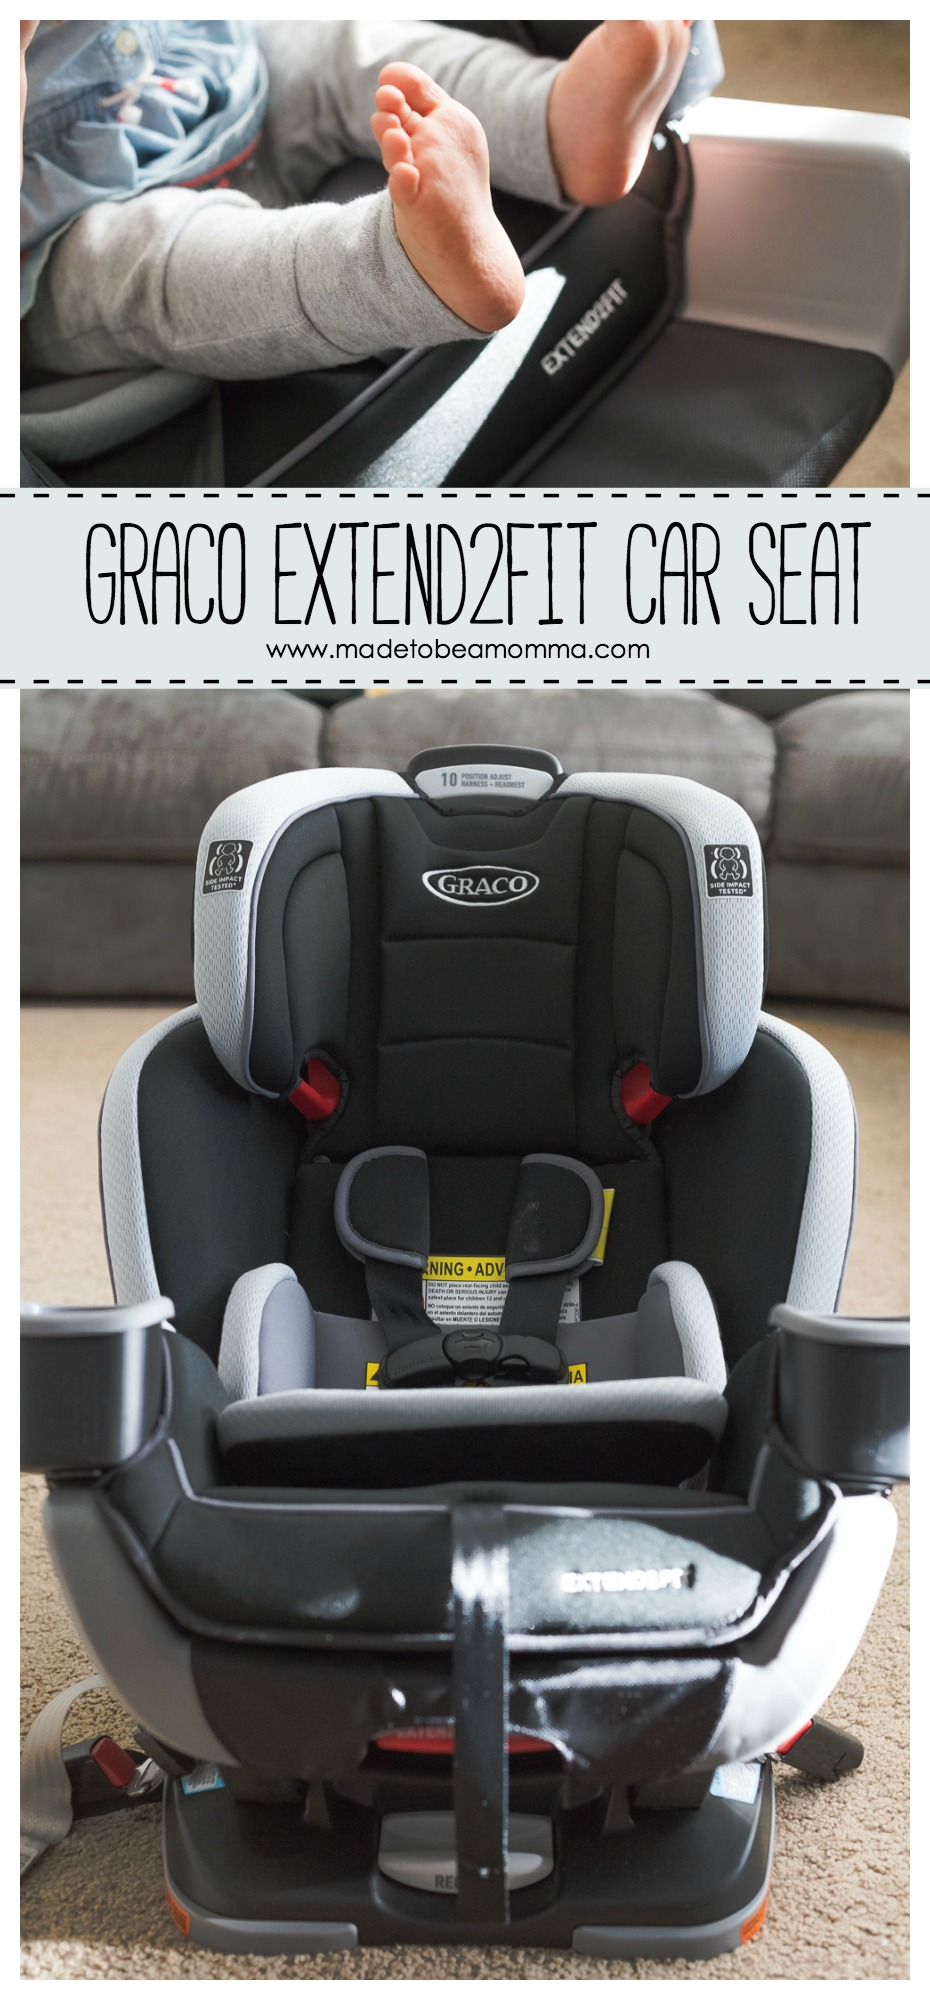 graco-extend2fit-carseat